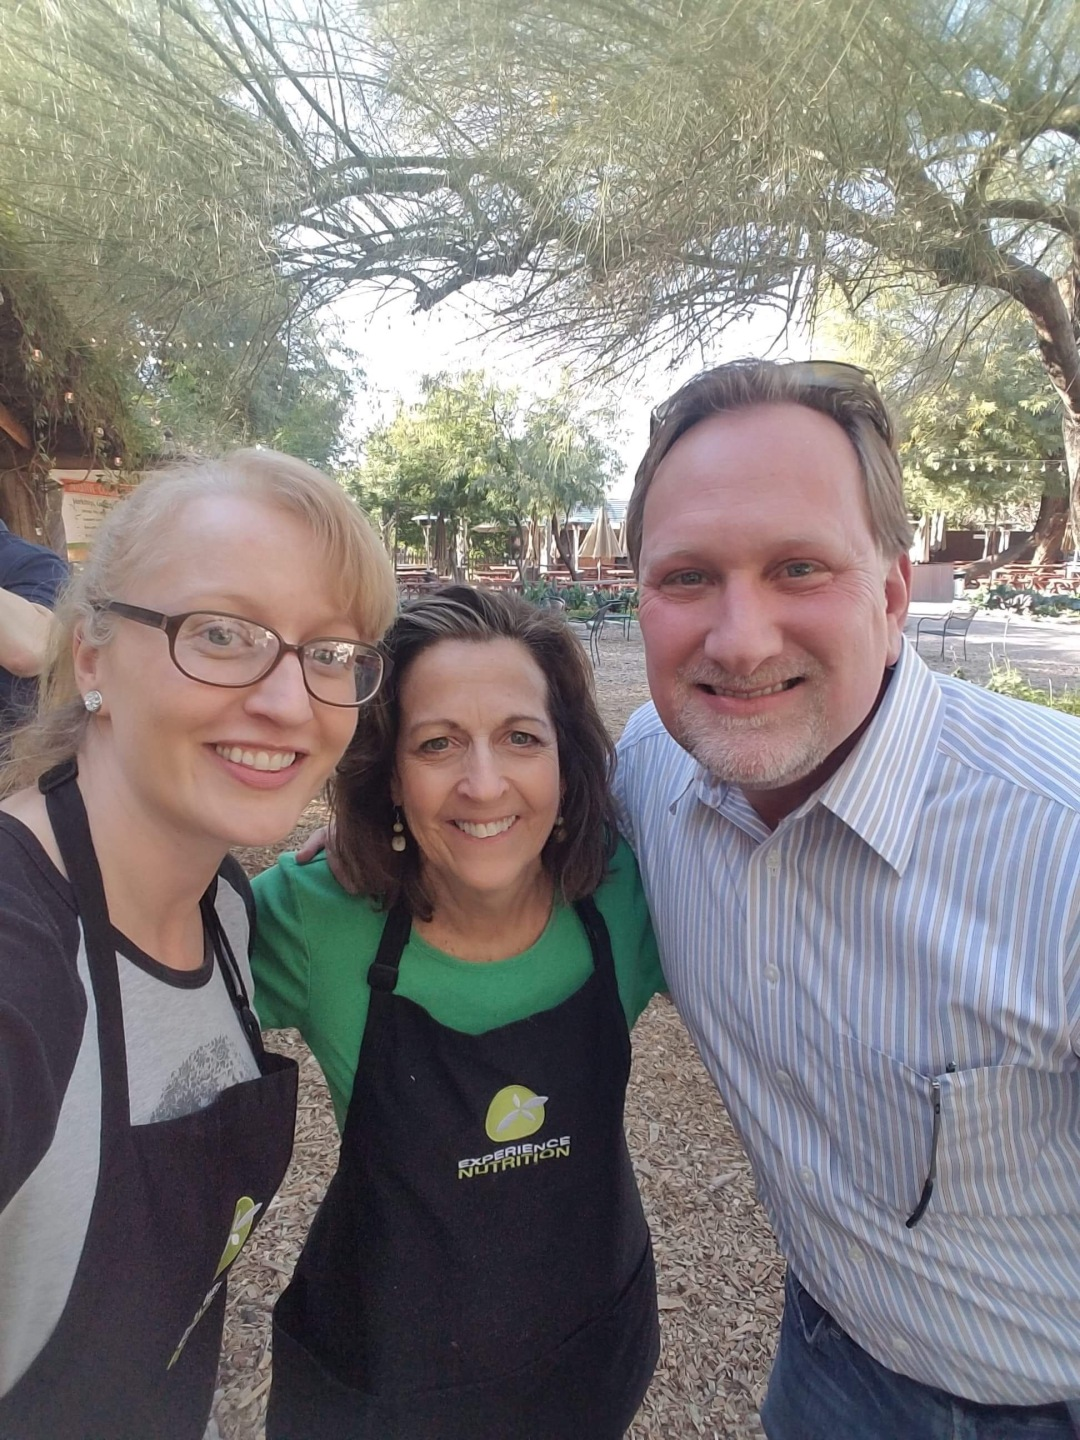 A-17-VisitPhoenix-ExperienceNutritionTeamBuilding-Cassie-Melanie-Ronnie-IMG_2125